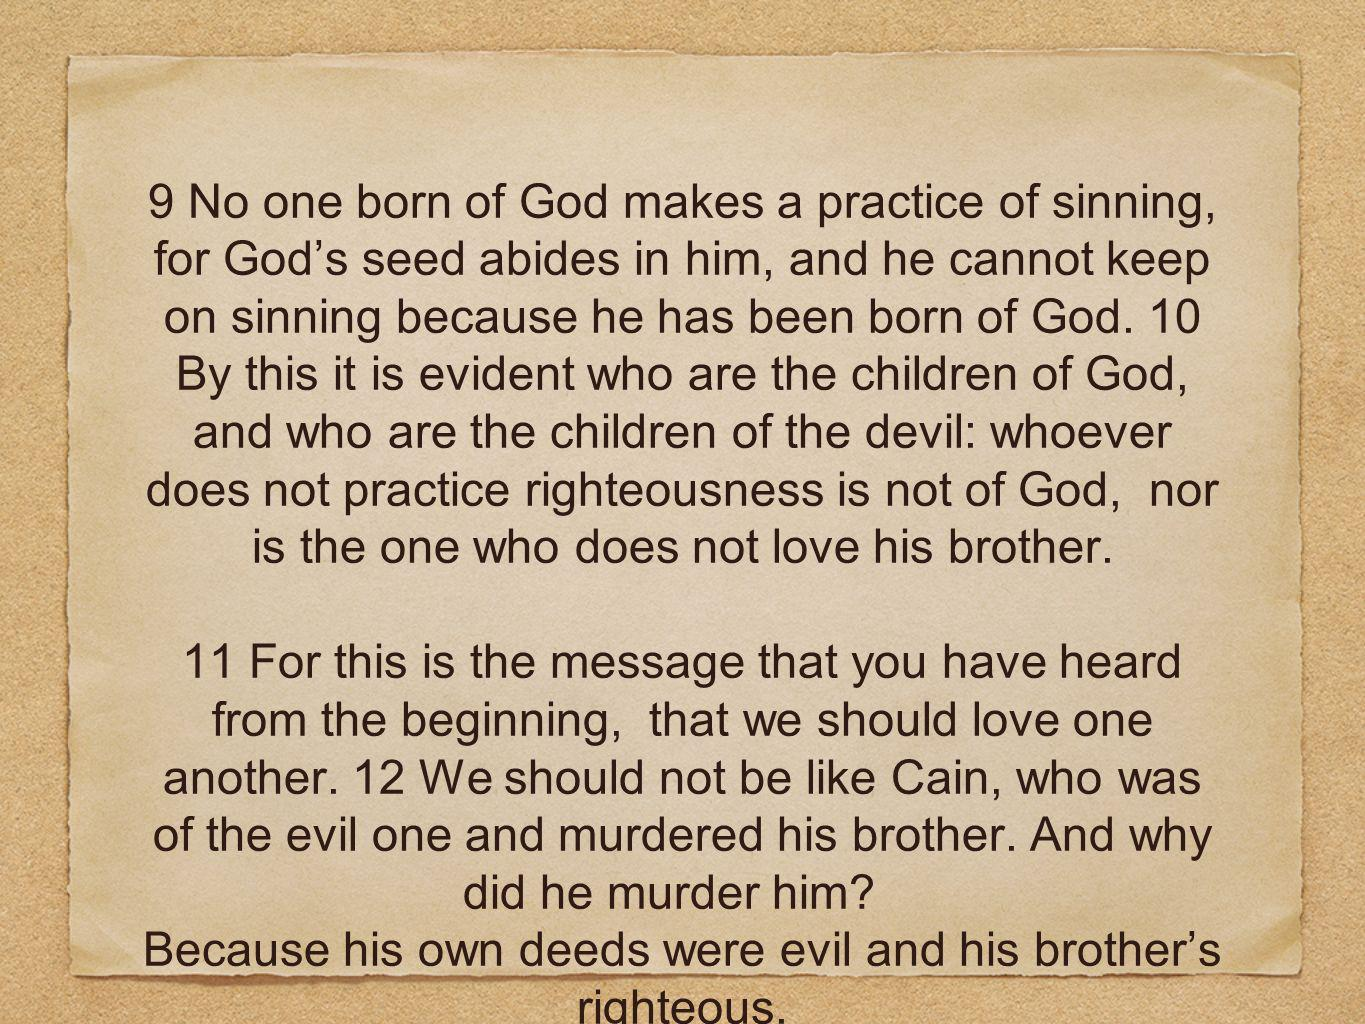 Because his own deeds were evil and his brother's righteous.